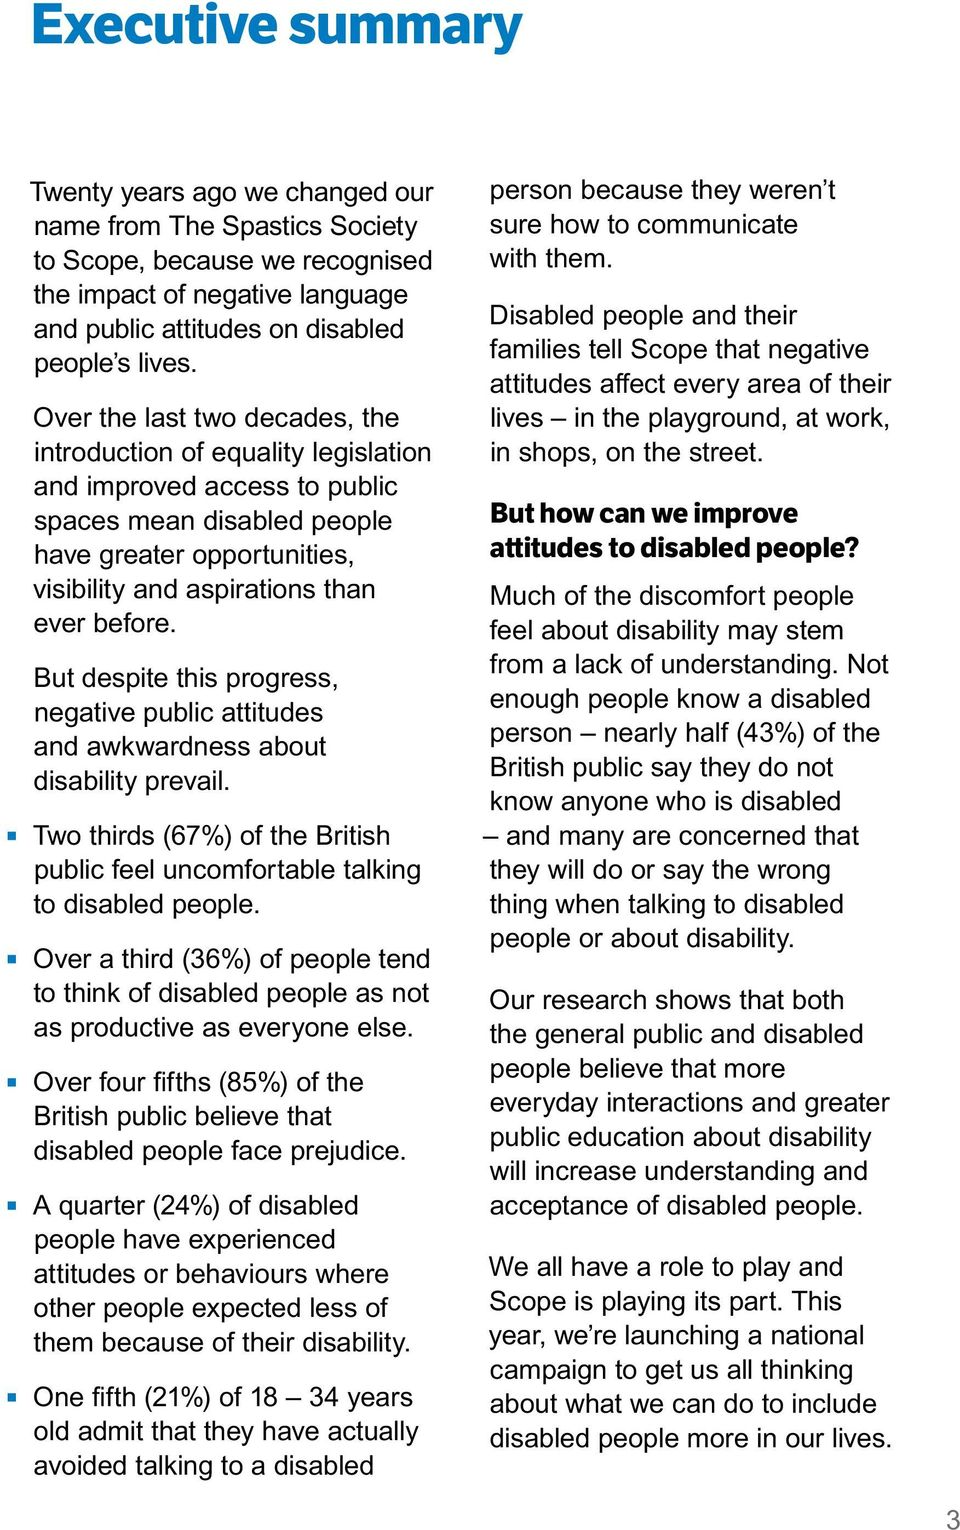 But despite this progress, negative public attitudes and awkwardness about disability prevail. Two thirds (67%) of the British public feel uncomfortable talking to disabled people.